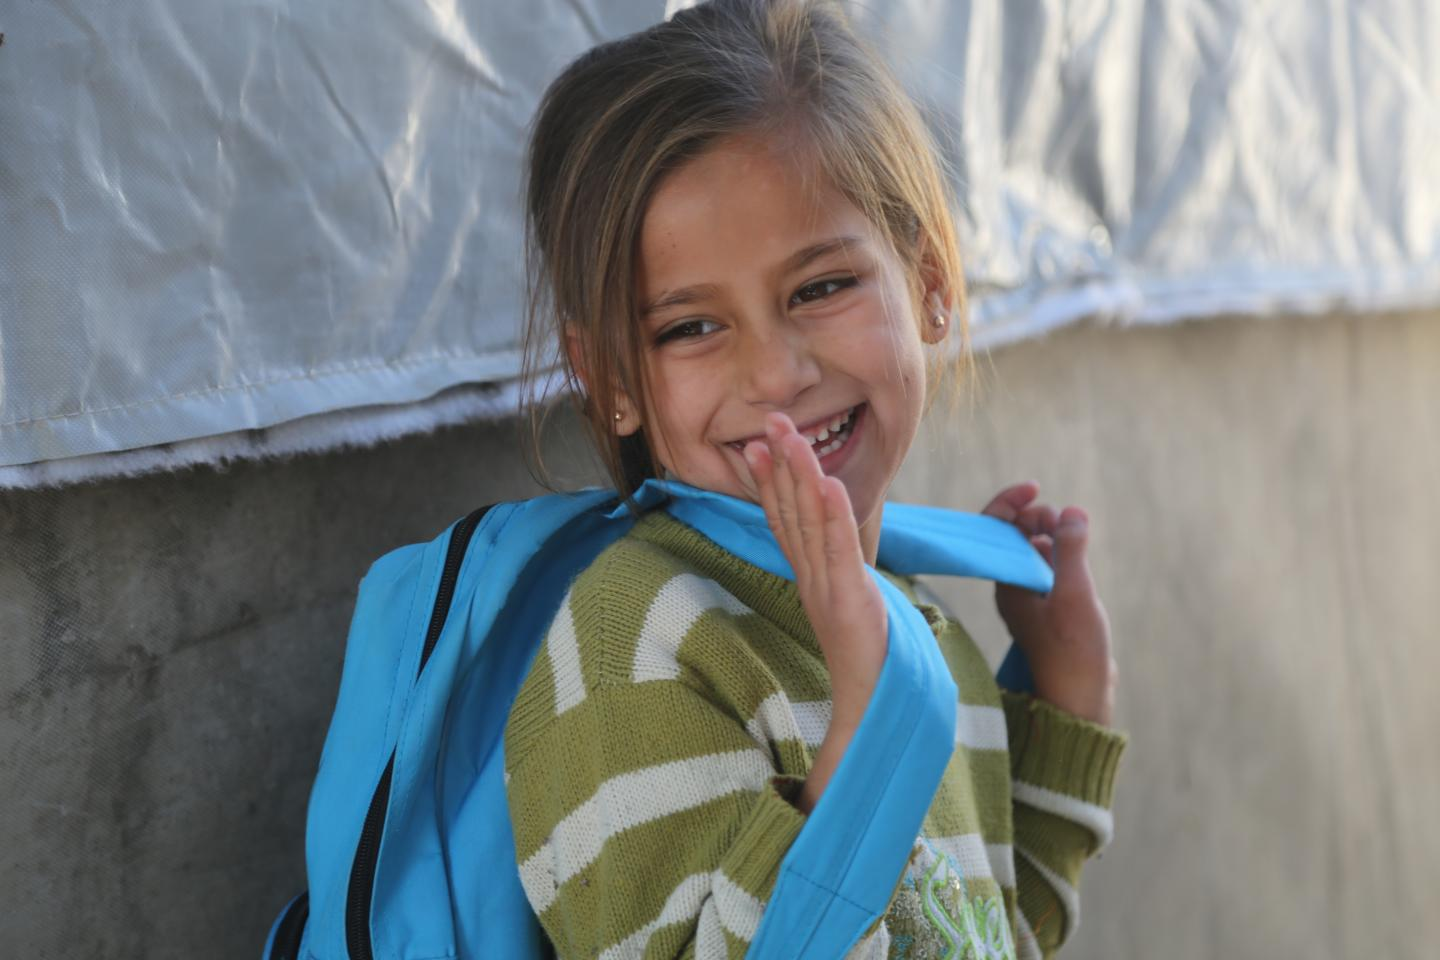 A refugee girl is smiling with her new school backpack, provided by UNICEF